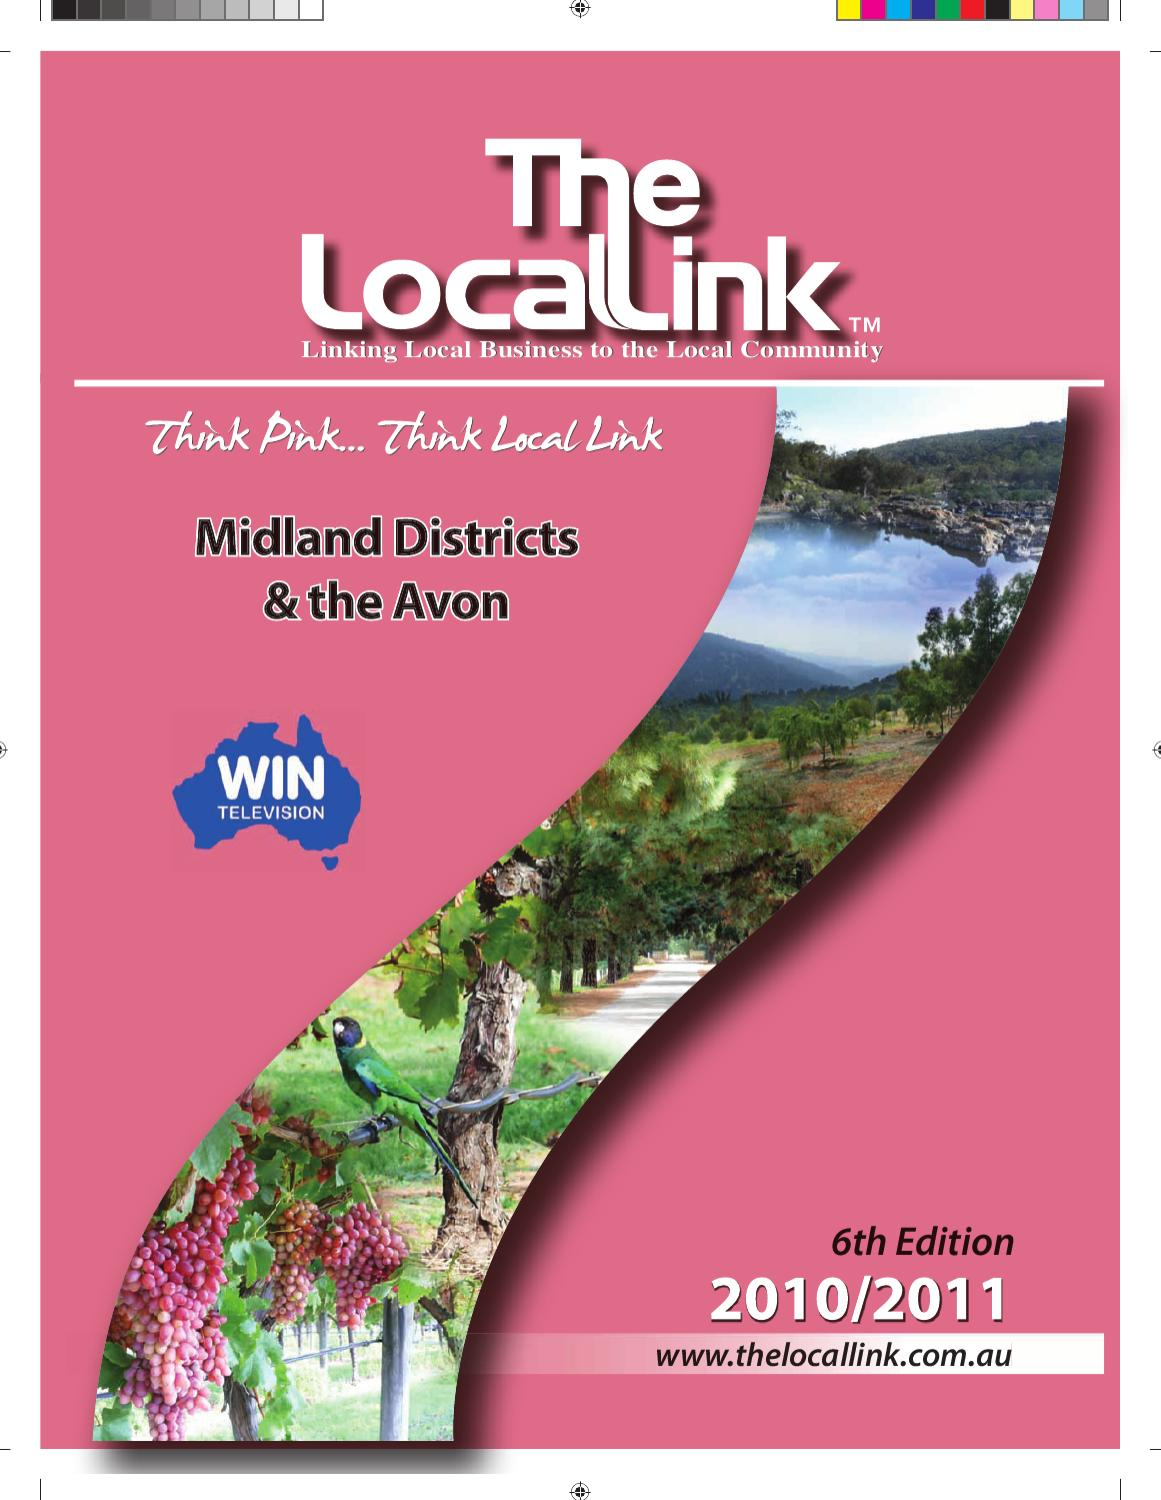 The Local Link MIDLAND by ryan goodsell - issuu